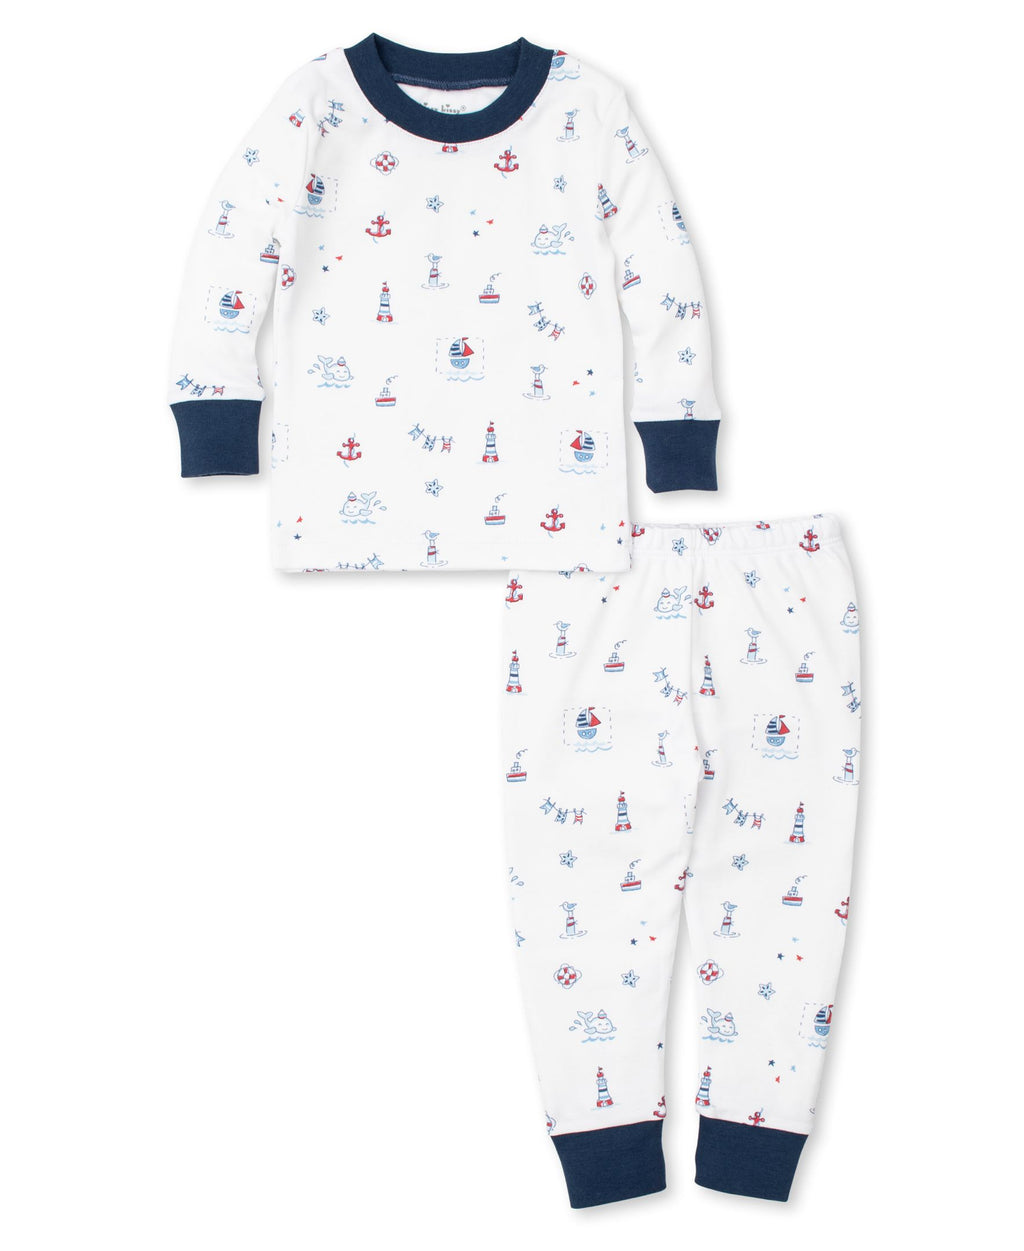 Nautical Blues Pajama Set